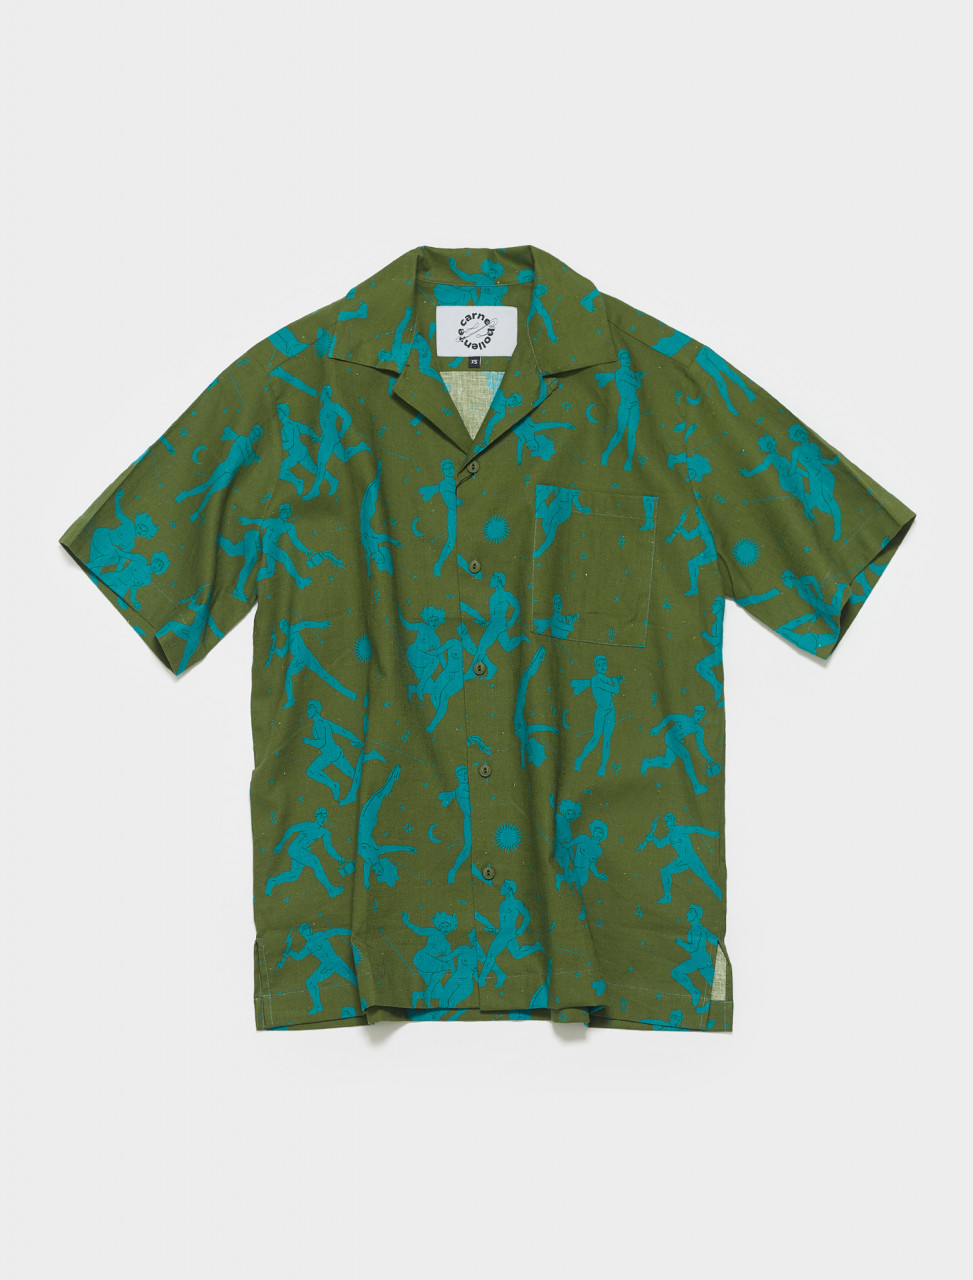 SS21ST01 CARNE BOLLENTE THE SIGHING GAME SHIRT IN OLIVE GREEN